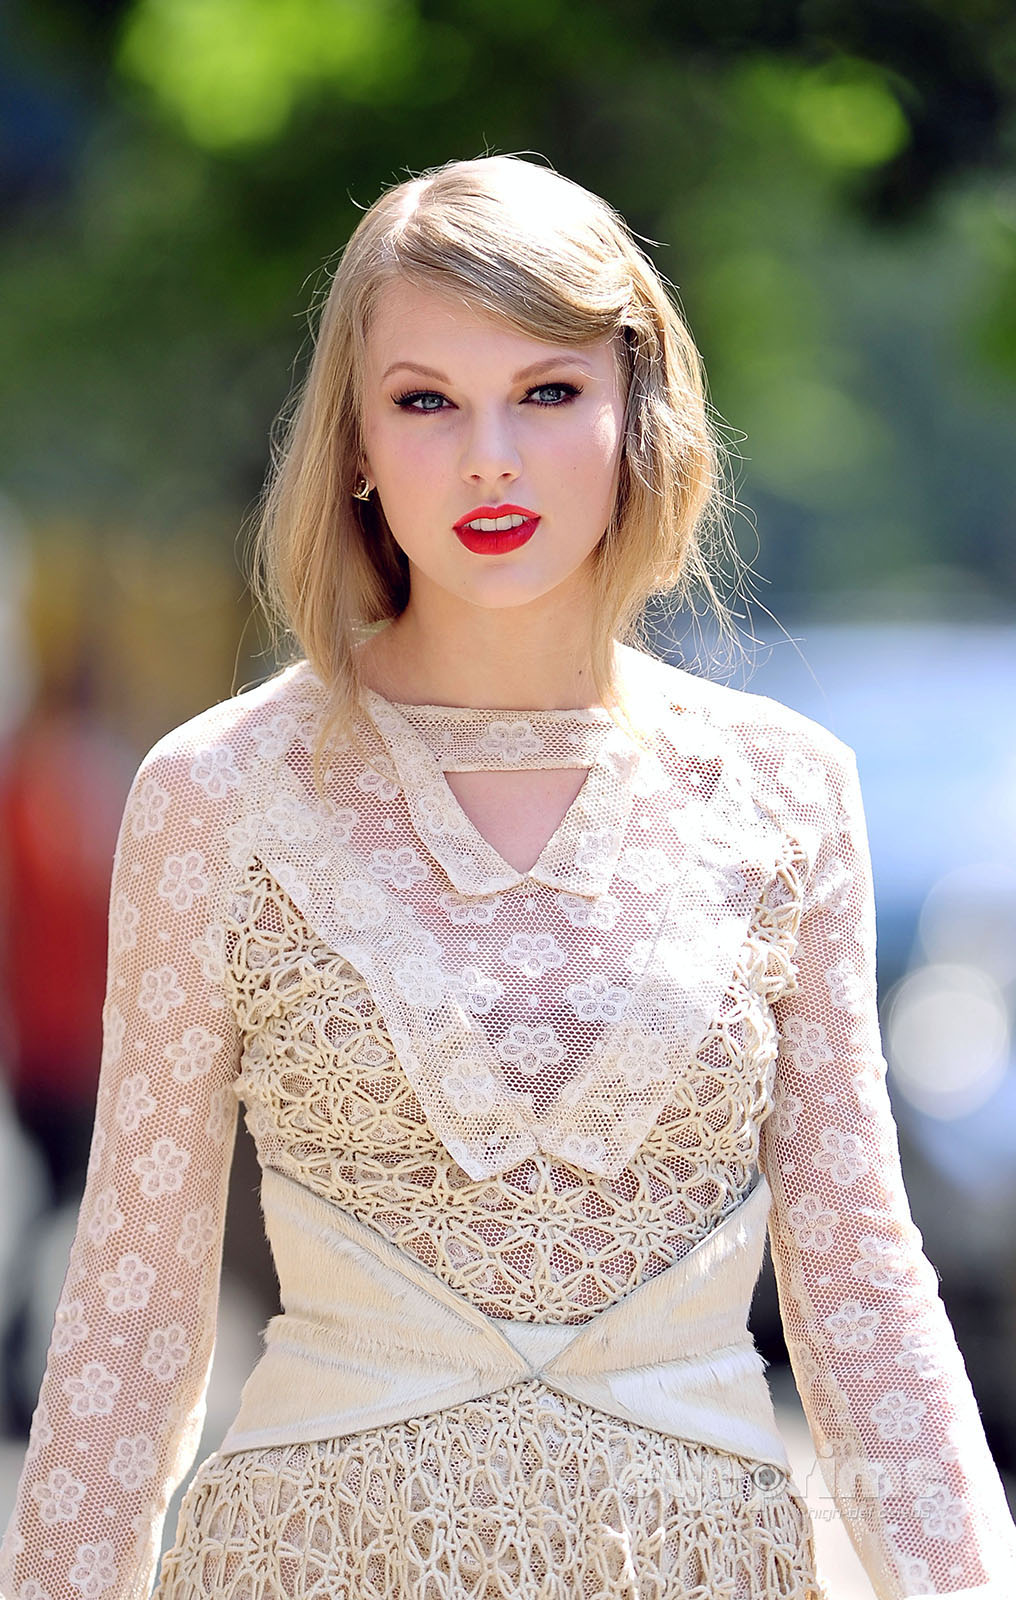 Taylor Swift is spotted on her way to the Rodarte Fashion Show, Sep 13